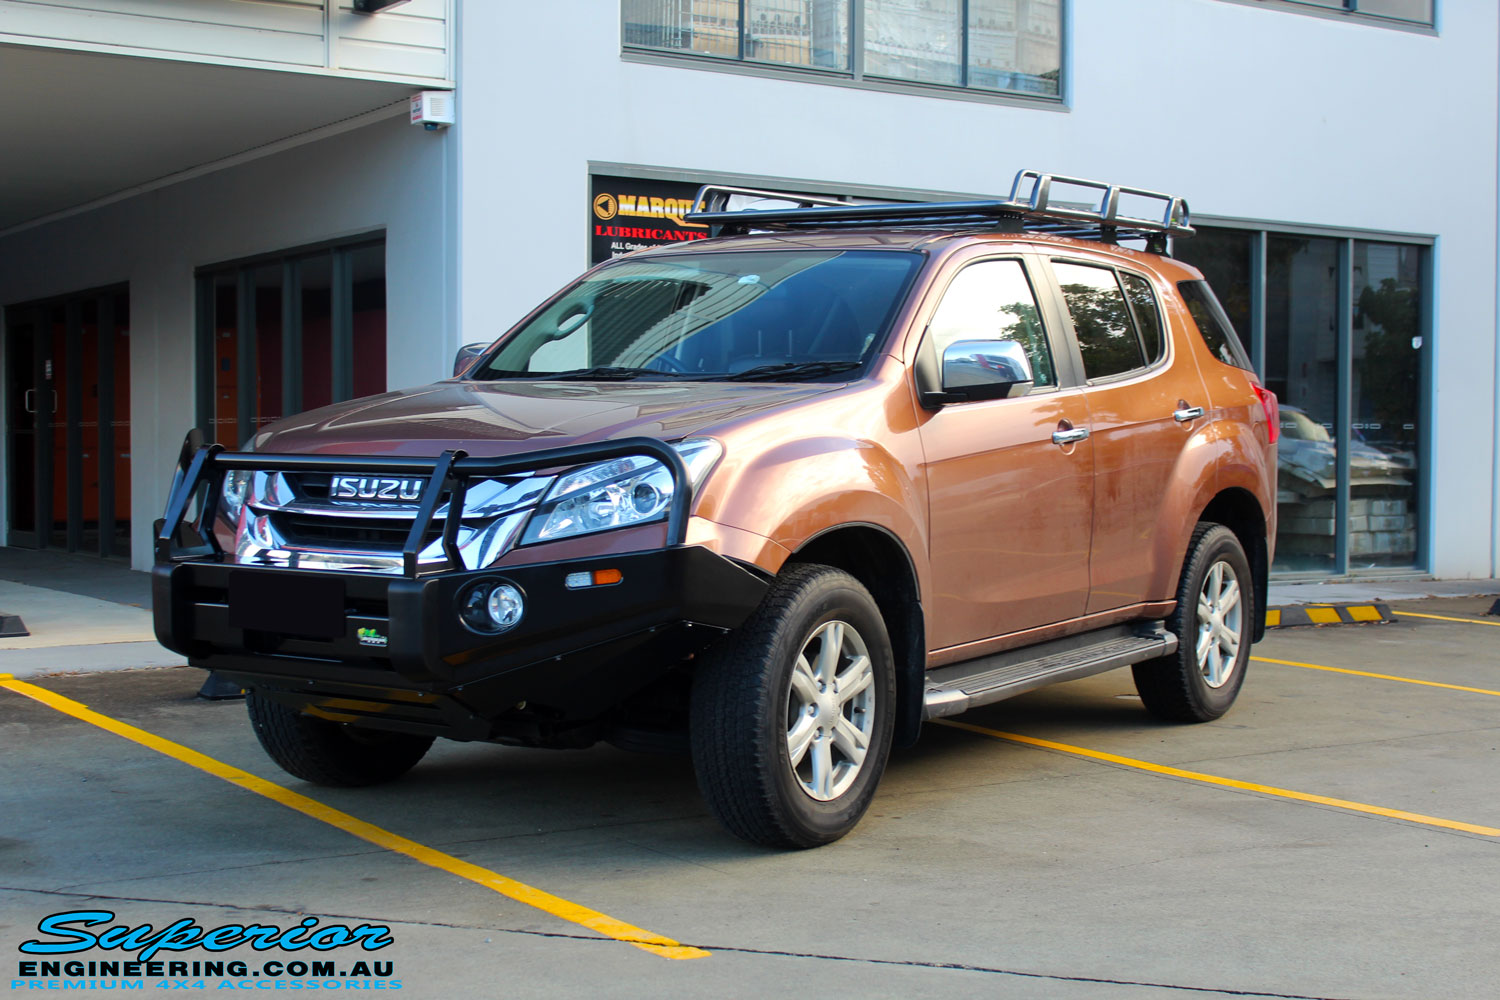 Left front side view of a Gold Isuzu MU-X Wagon after fitment of a Ironman 4x4 Roof Rack & Black Deluxe Bull Bar